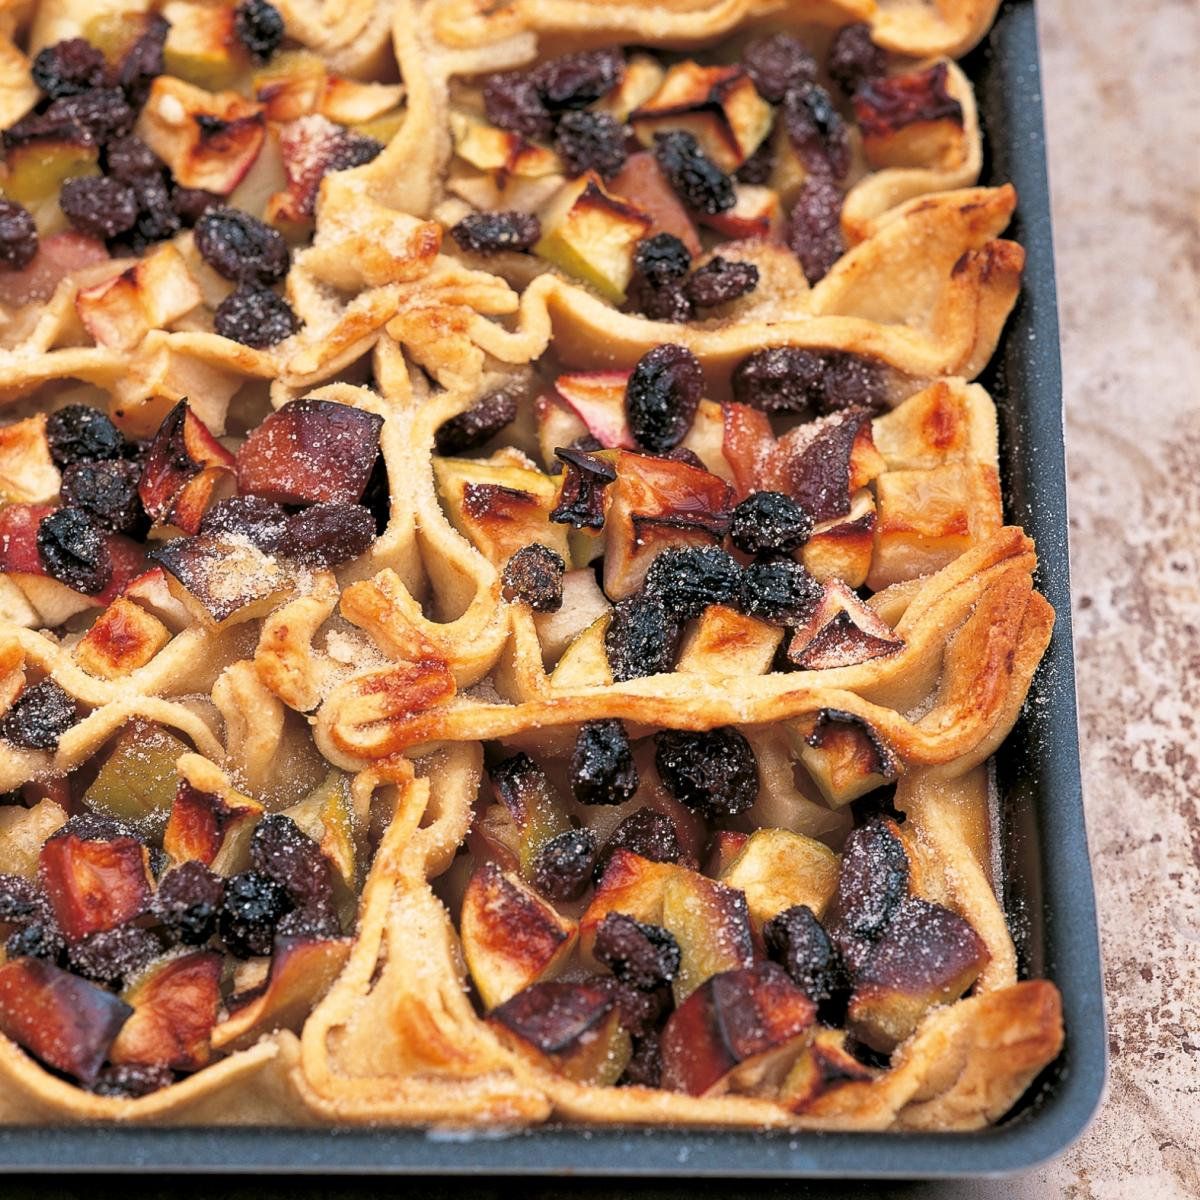 A picture of Delia's Apple and Raisin Parcels recipe